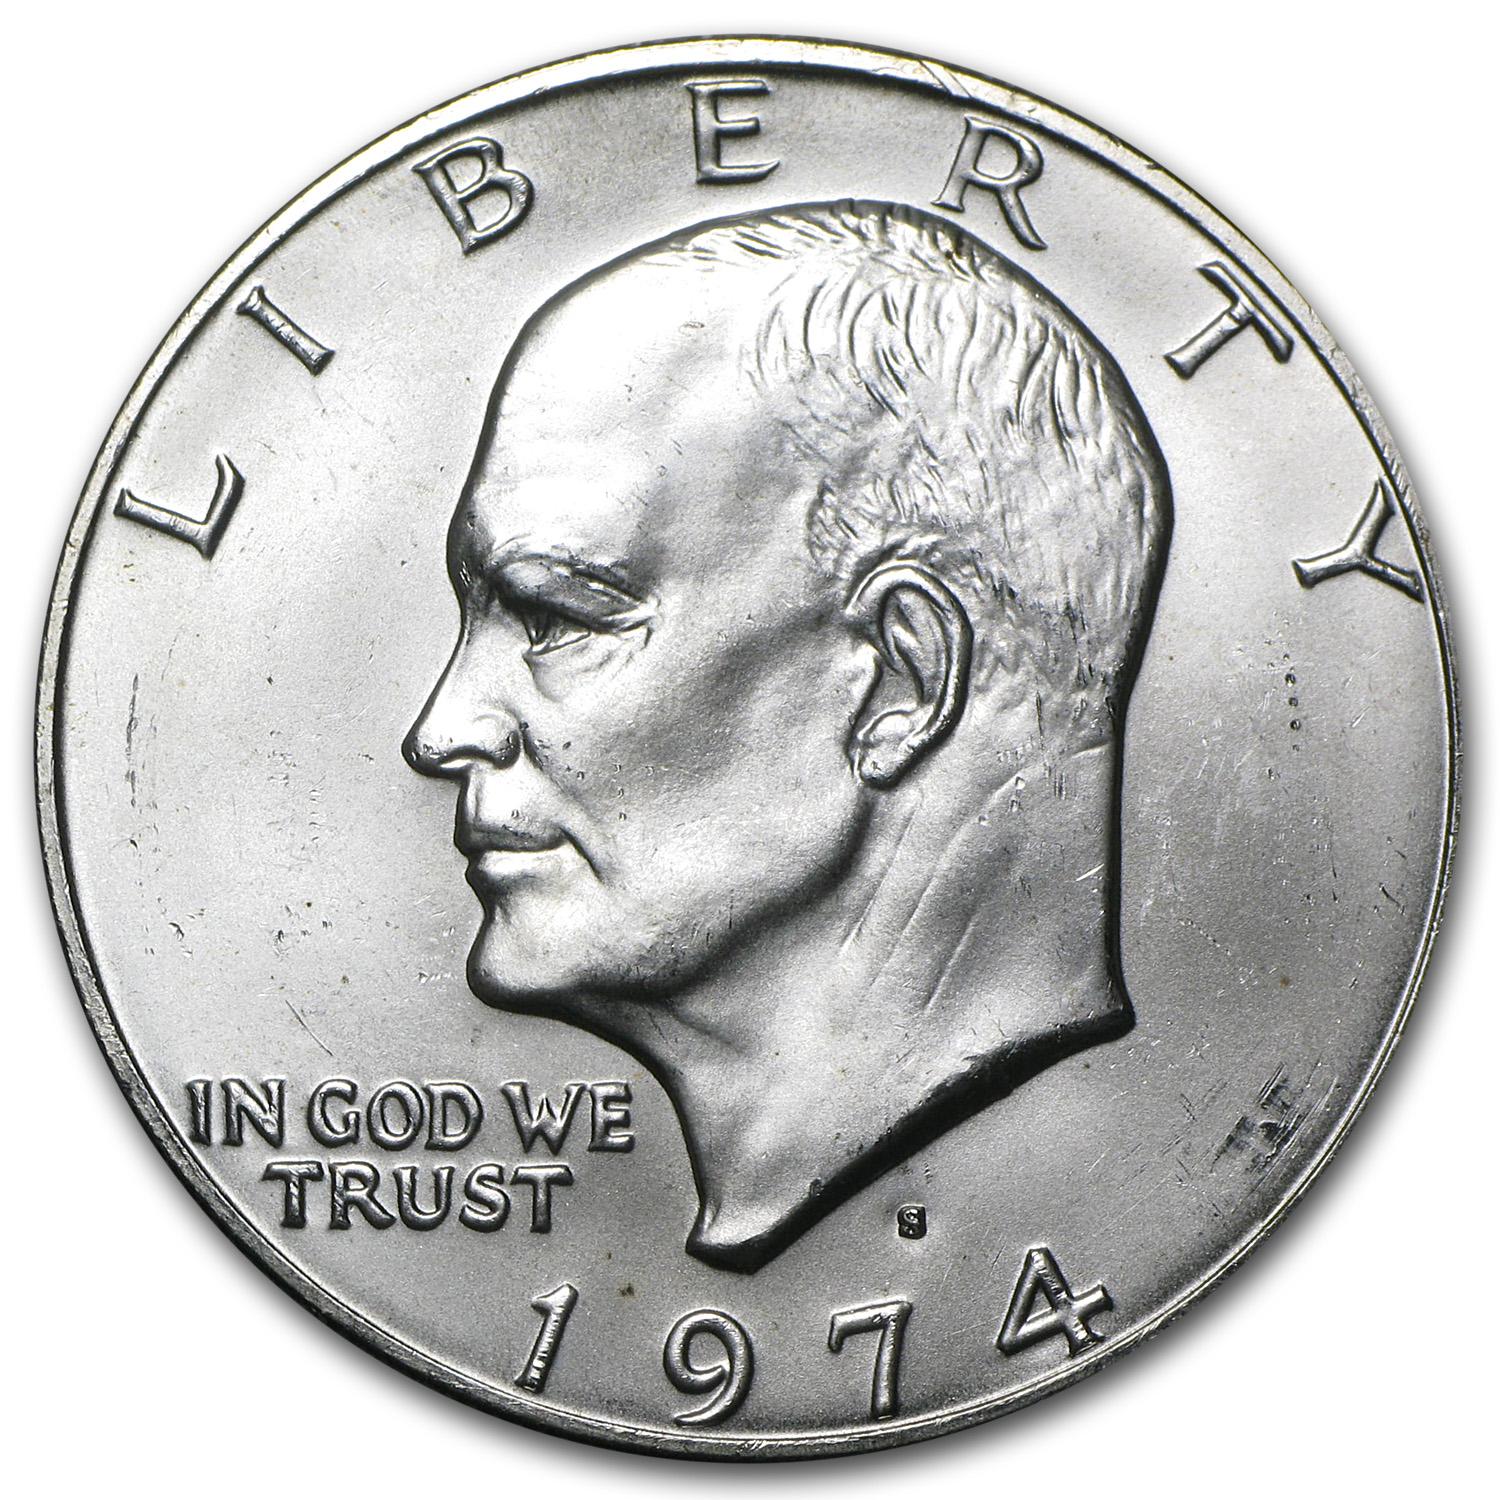 1974-S Eisenhower Dollar 40% Silver BU MS-60 - MS-65